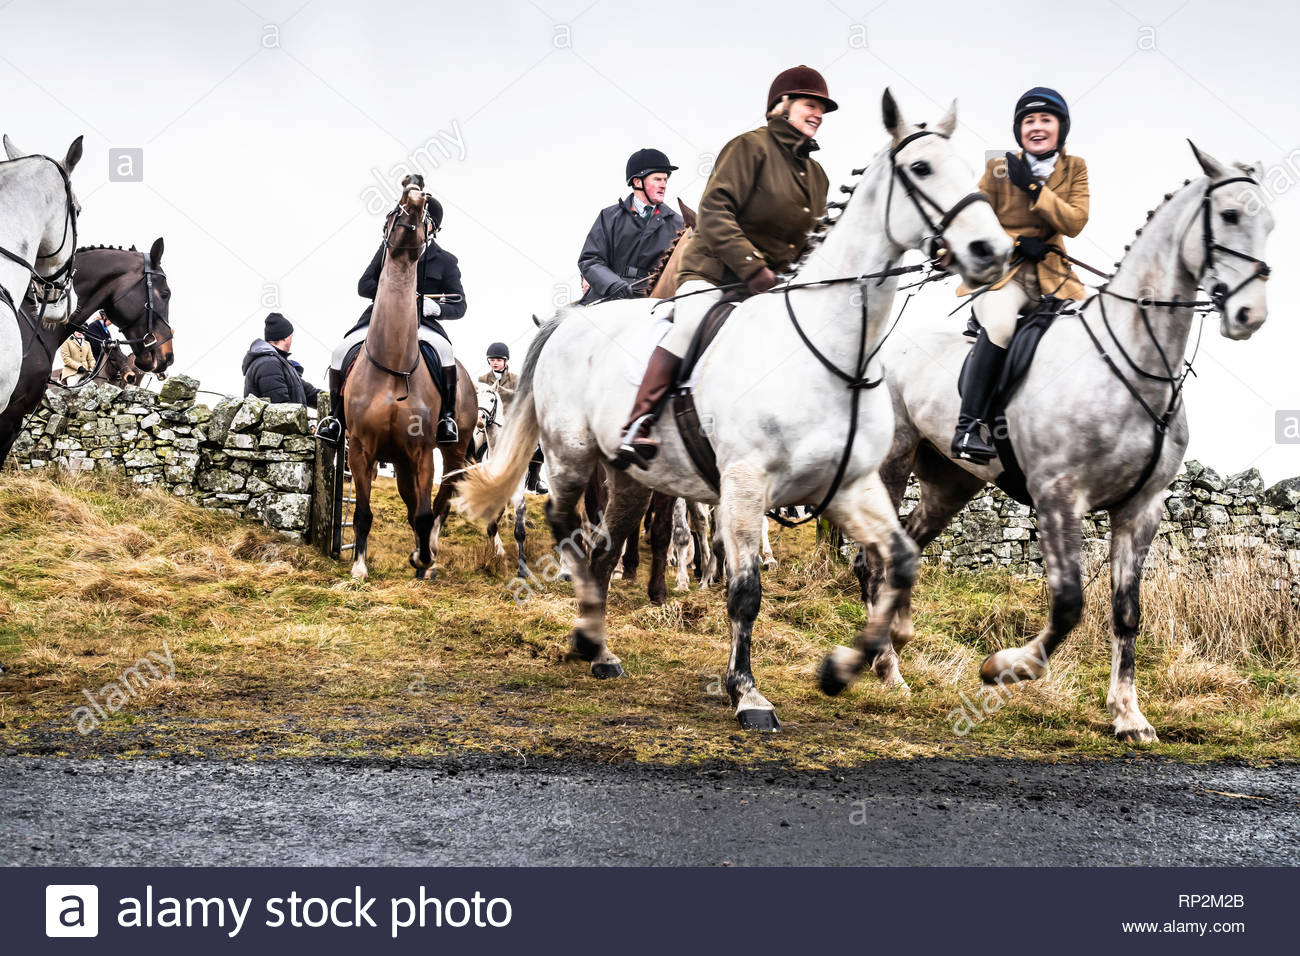 Kelso, UK. 20th February 2019. Wind and rain didn't deter a sizeable midweek field following the Duke of Buccleuch Hunt over the hills around Morebattle village in the Scottish Borders. Credit: Chris Strickland / Alamy Live News - Stock Image